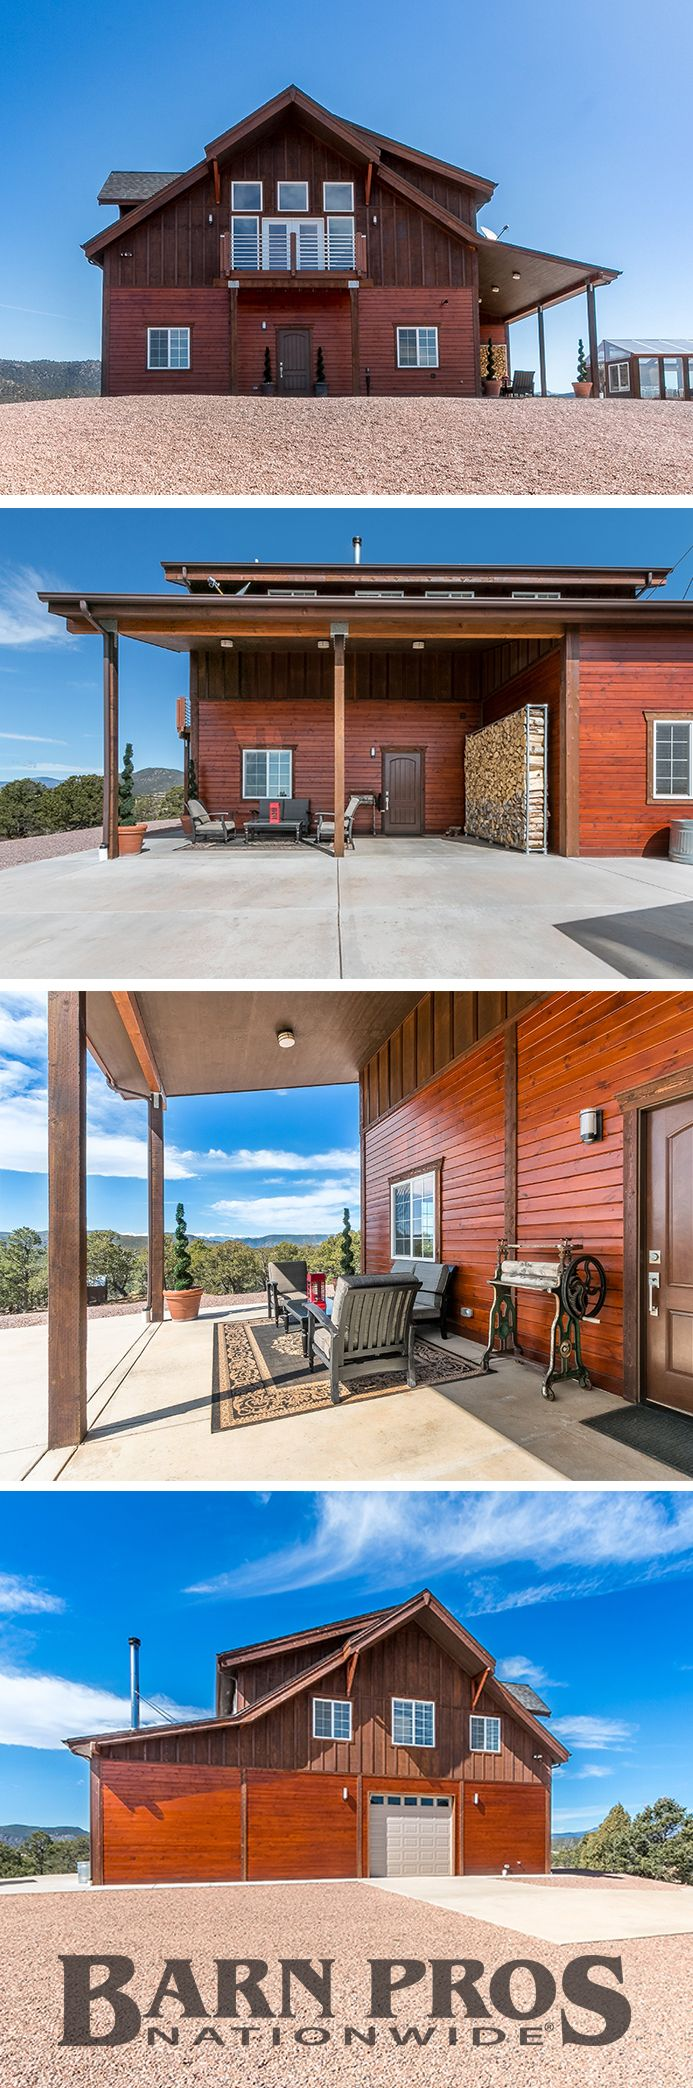 Off-grid barn apartment in Canon City, Colorado - beautiful contemporary home with both modern and rustic touches.